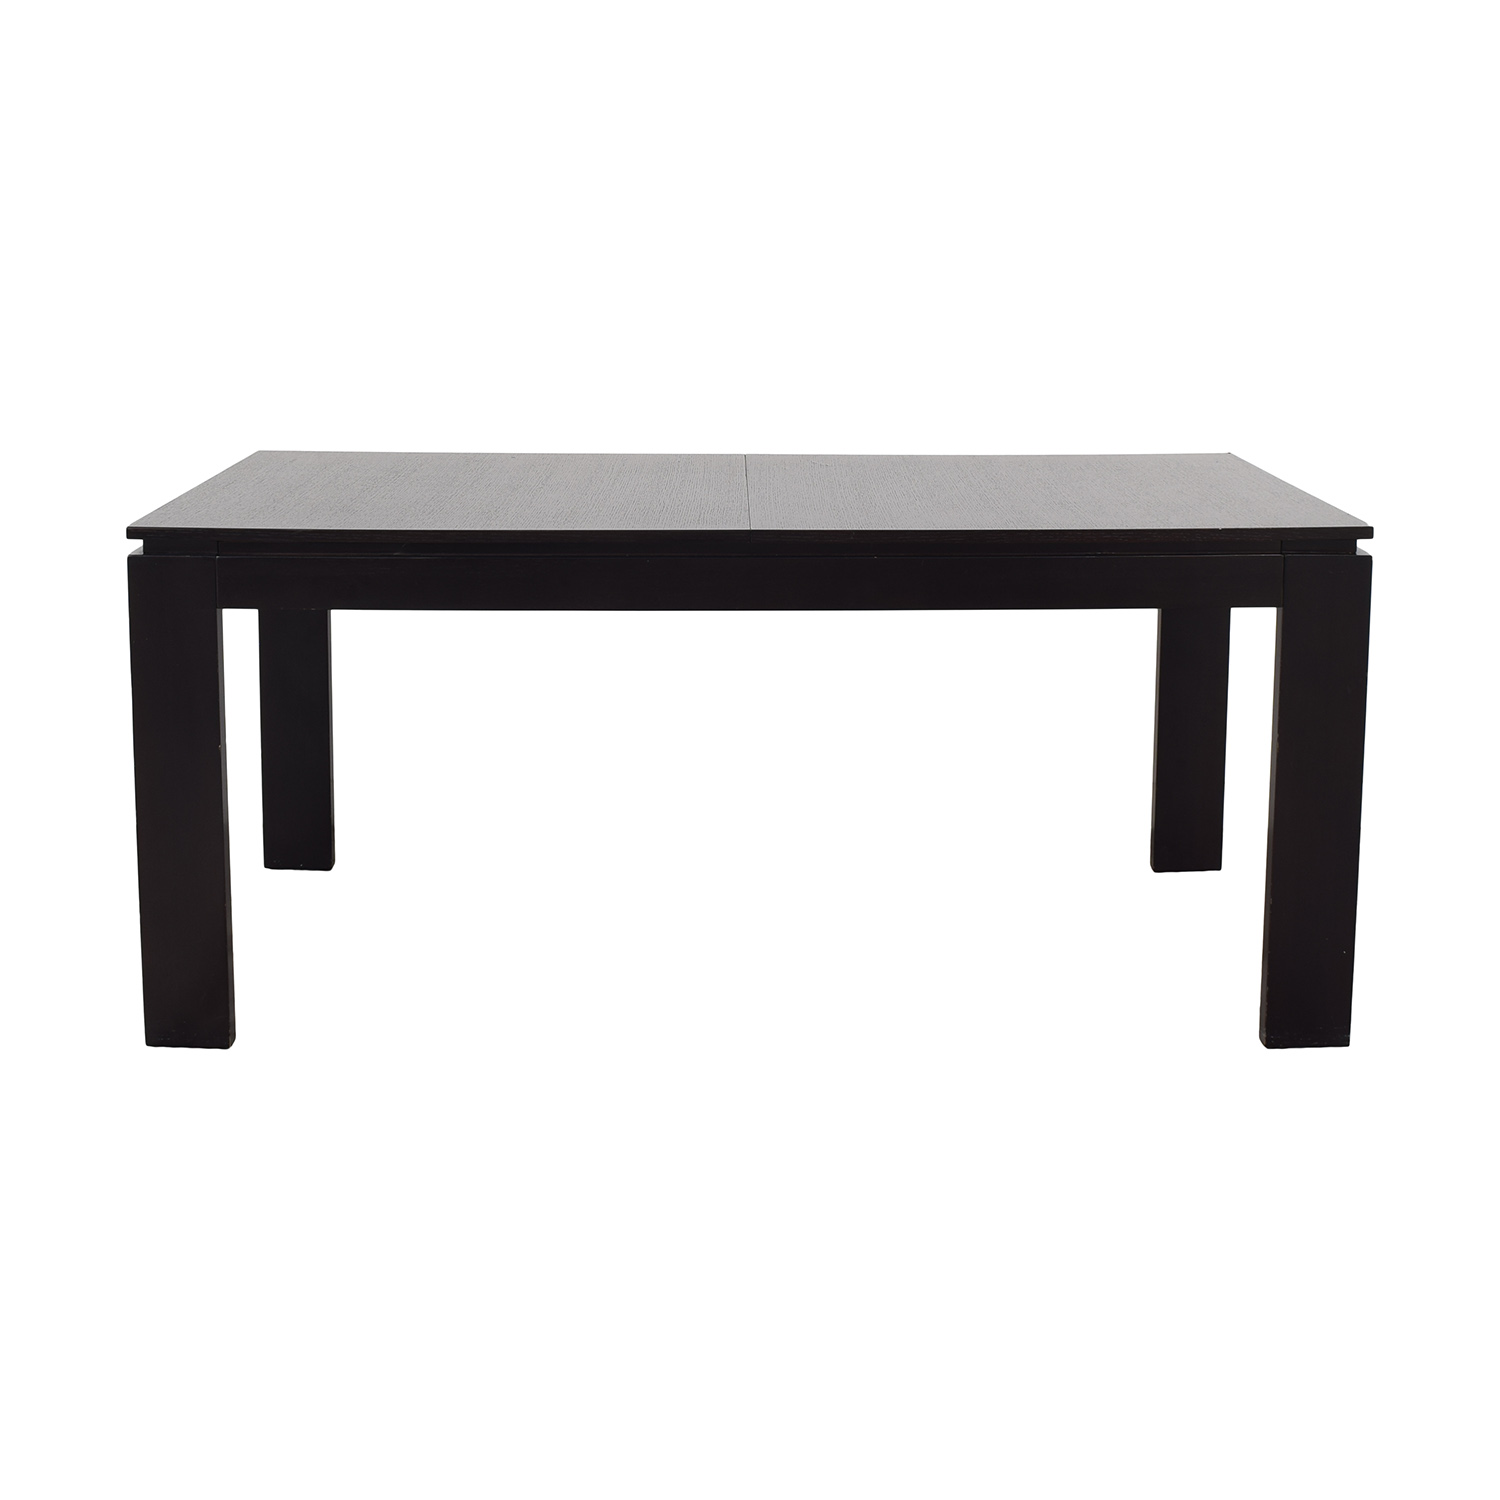 CB2 CB2 Wenge Expandable Dining Table Dinner Tables